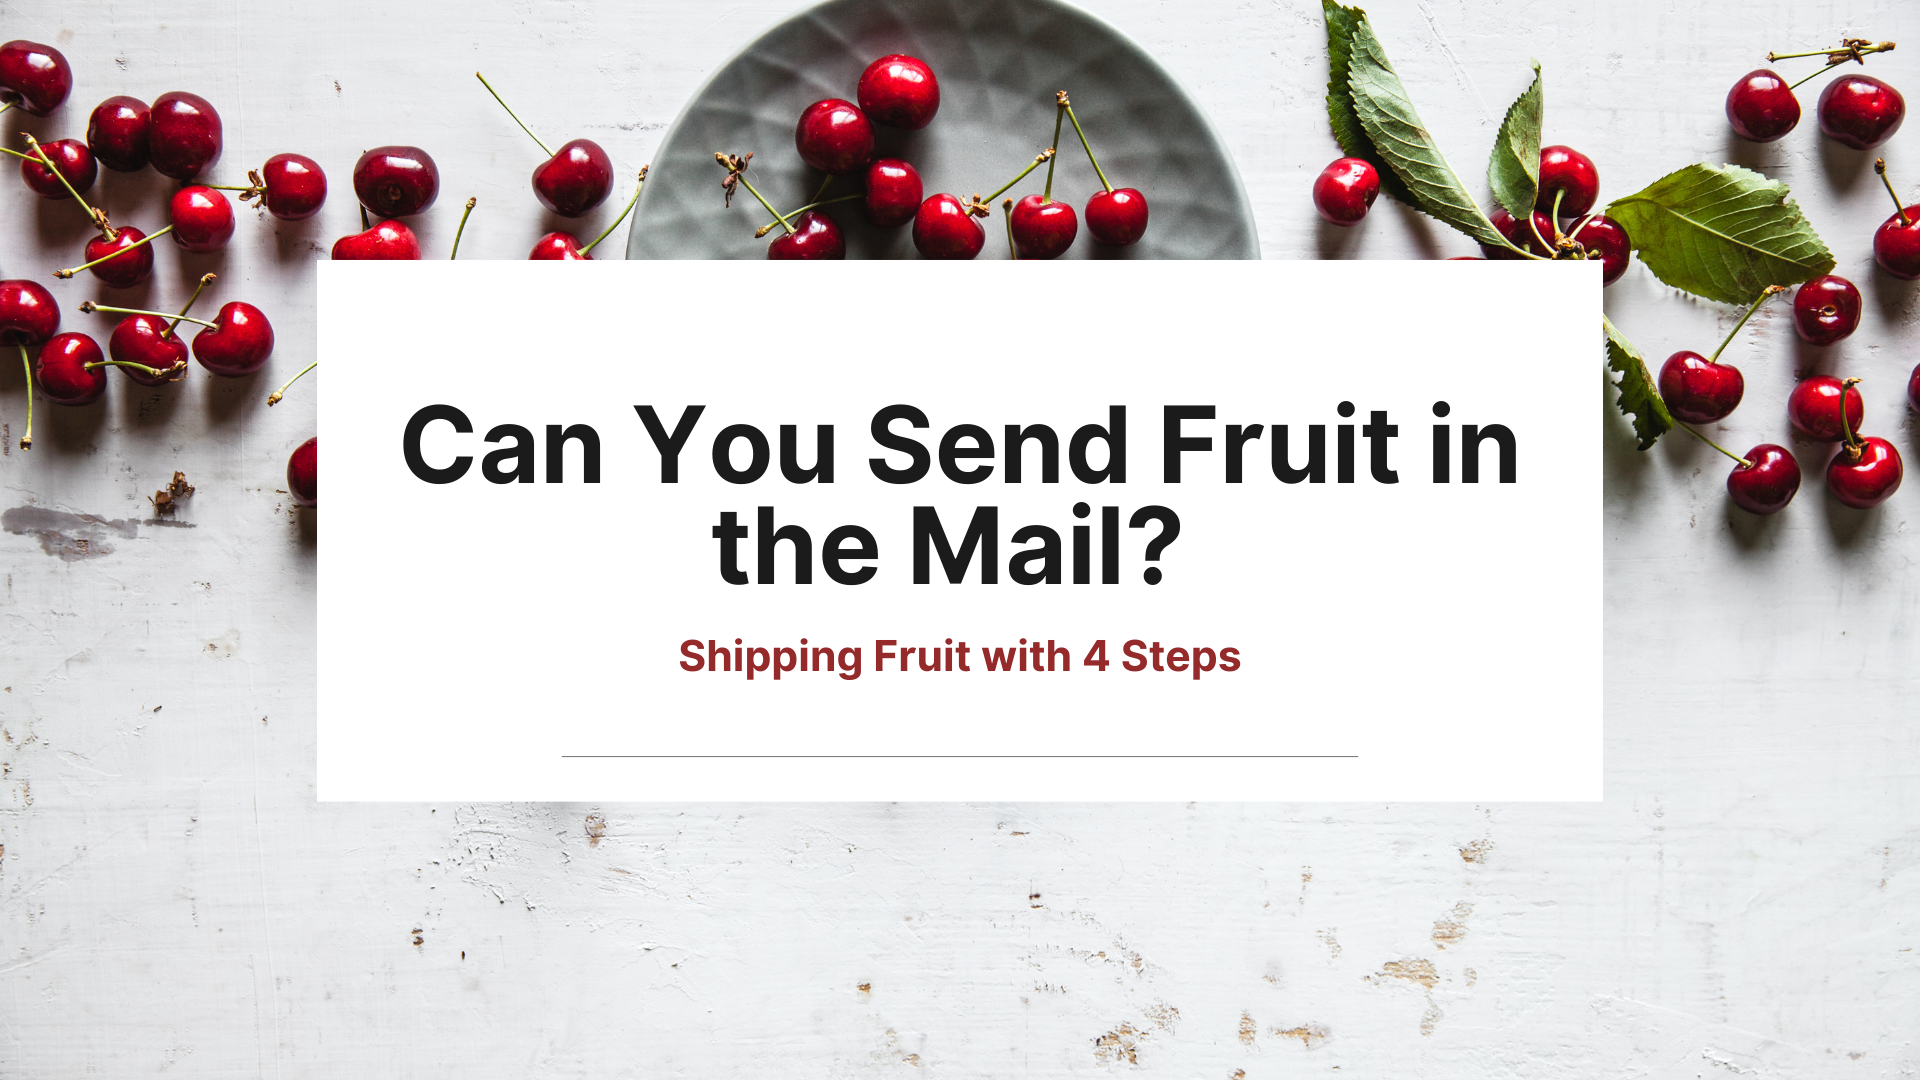 shipping-fruit-send-mail